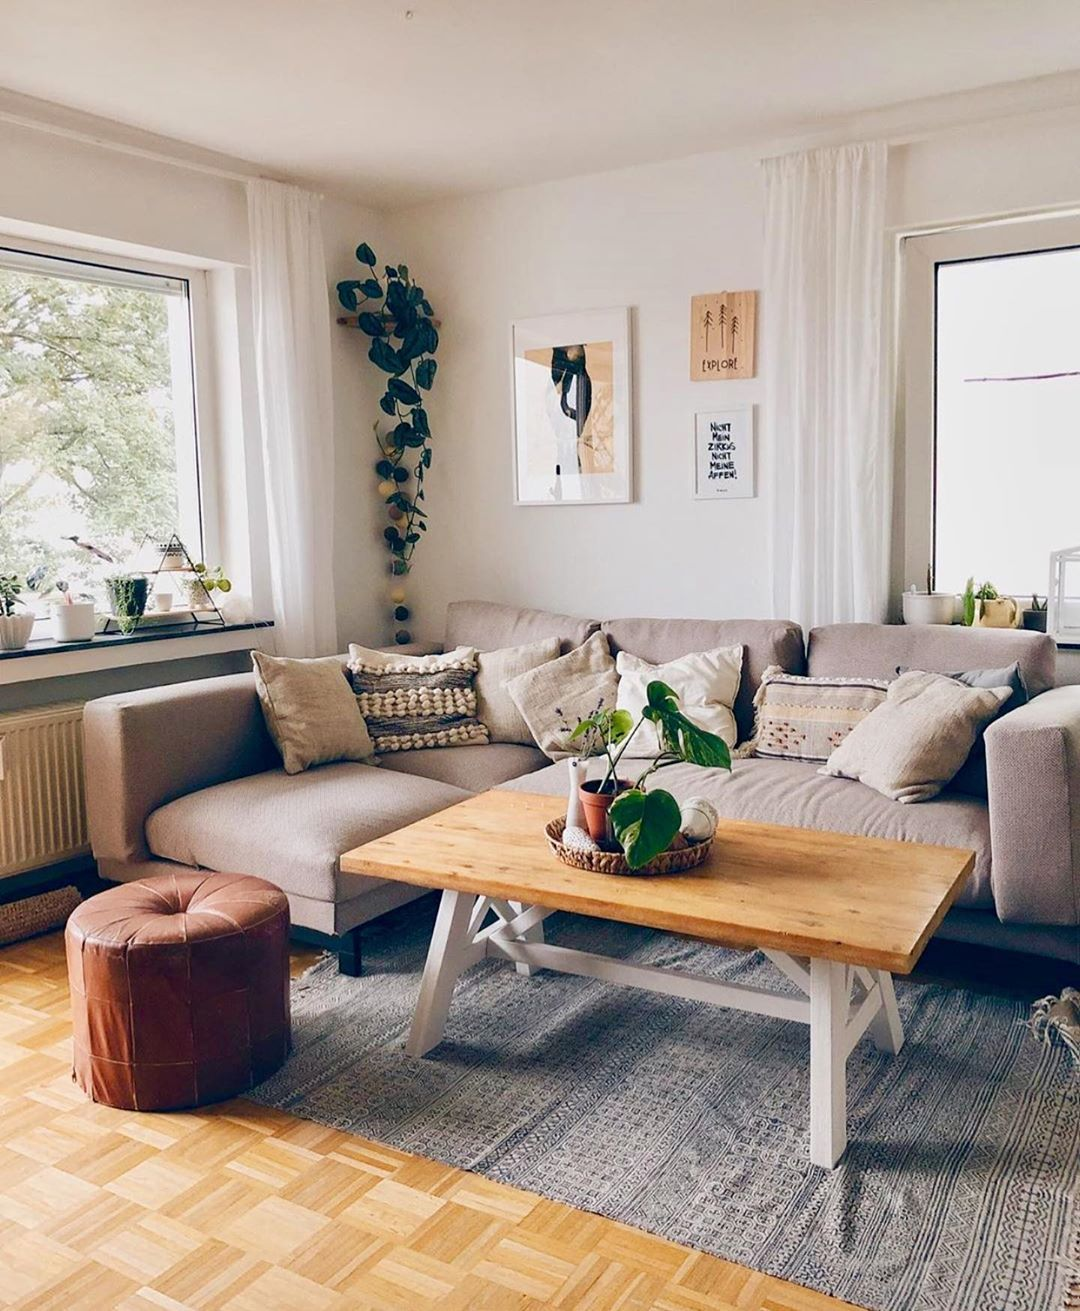 Home Design Ideas Instagram: Cozy Home Shots On Instagram : Hello Loving This Simple